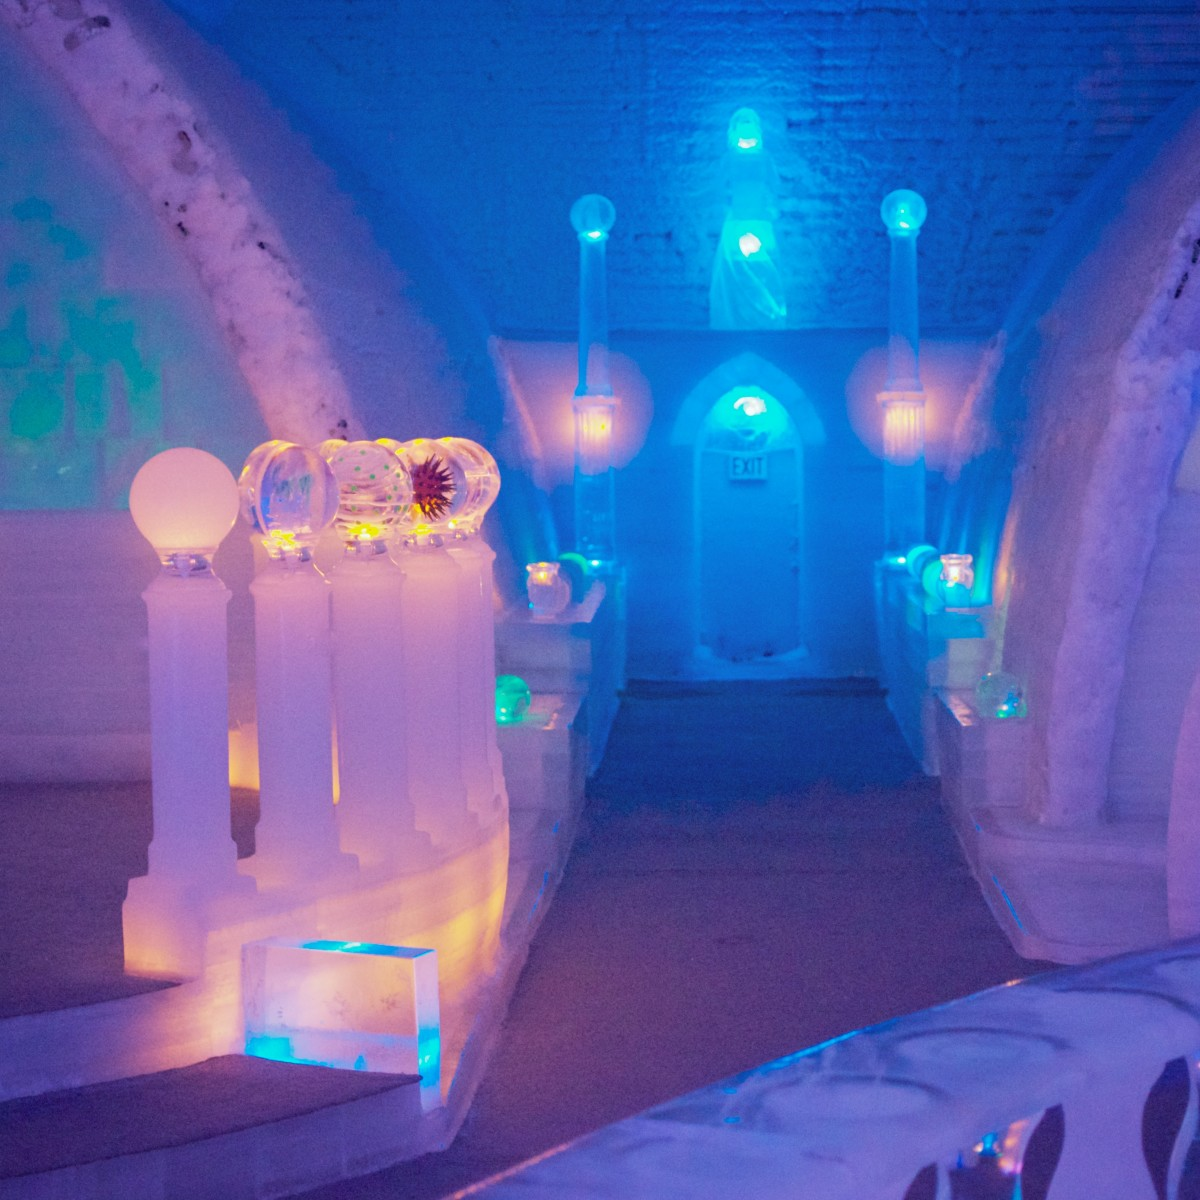 The Aurora Ice Hotel in Alaska is known for its jaw-dropping ice carvings.